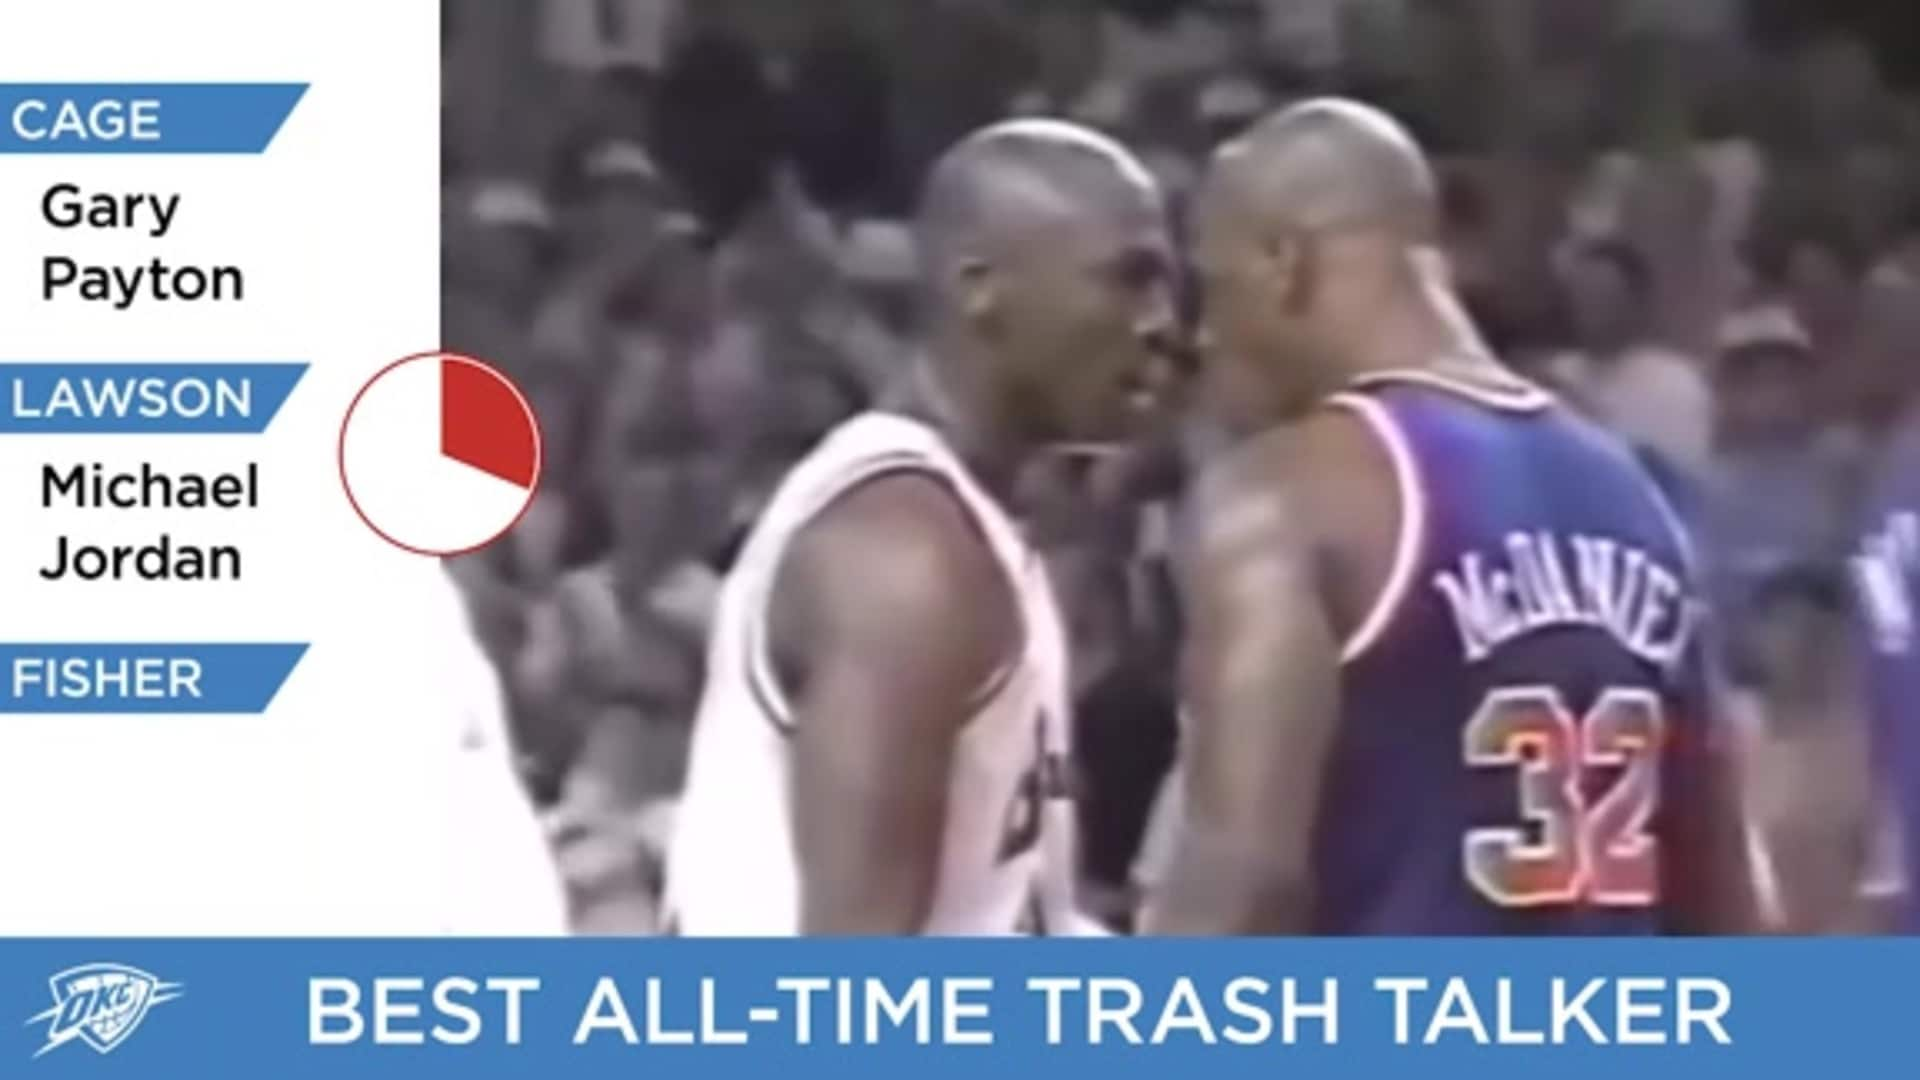 Make Your Case: Best Trash Talker